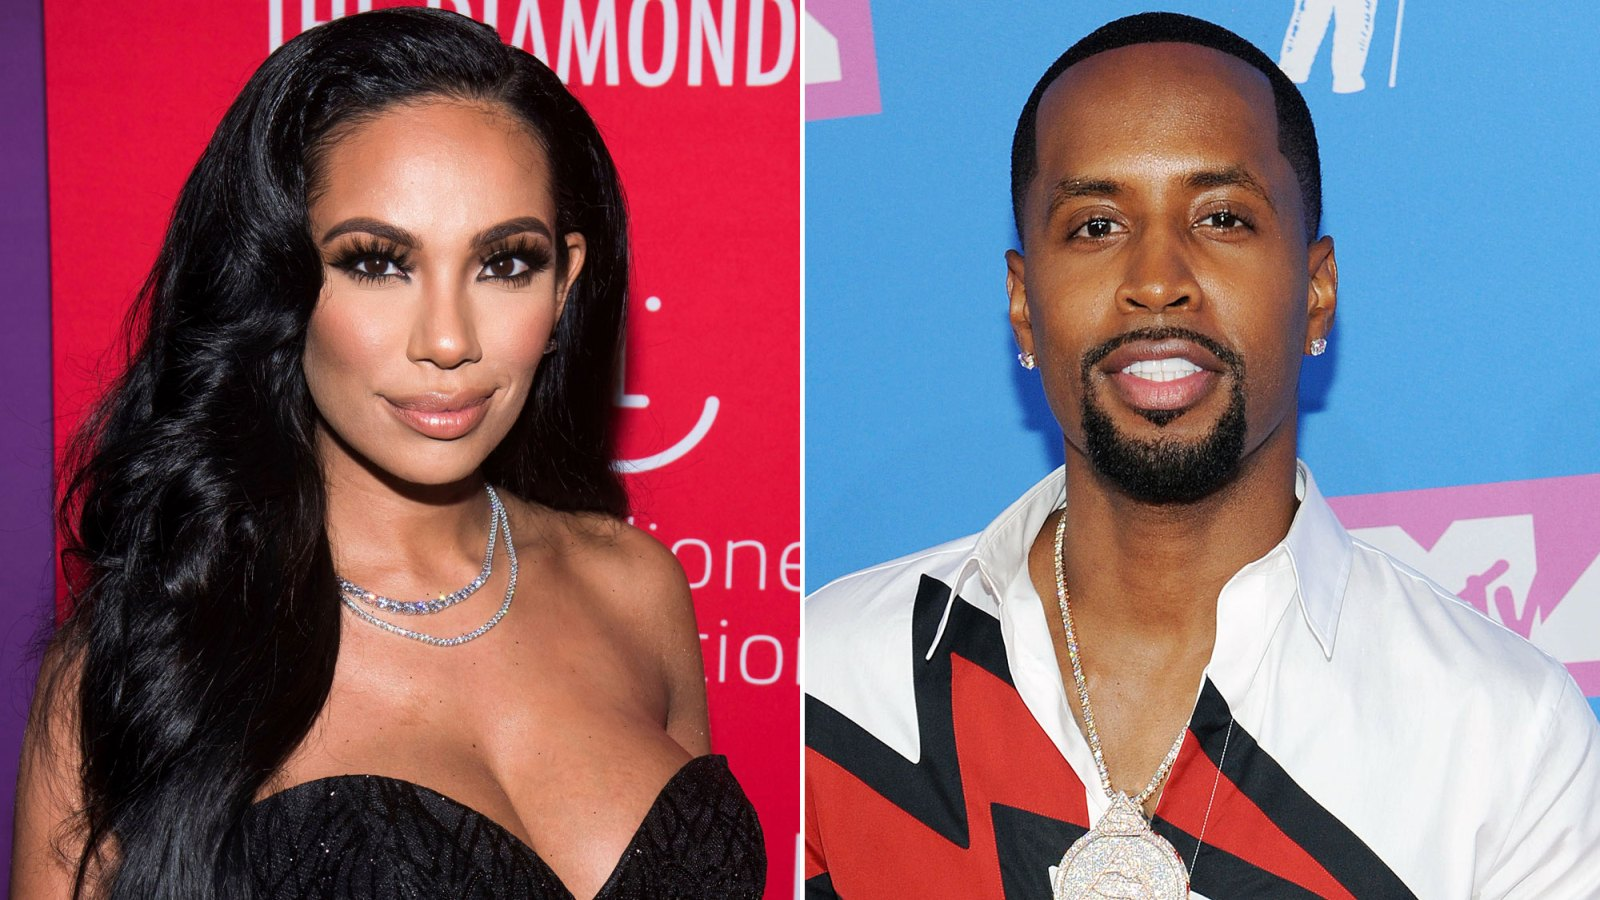 Erica Mena's Recent Thirst Trap In Which She's Flaunting Her Thickness Has Safaree Drooling - His Comments Make Fans Laugh Like There's No Tomorrow